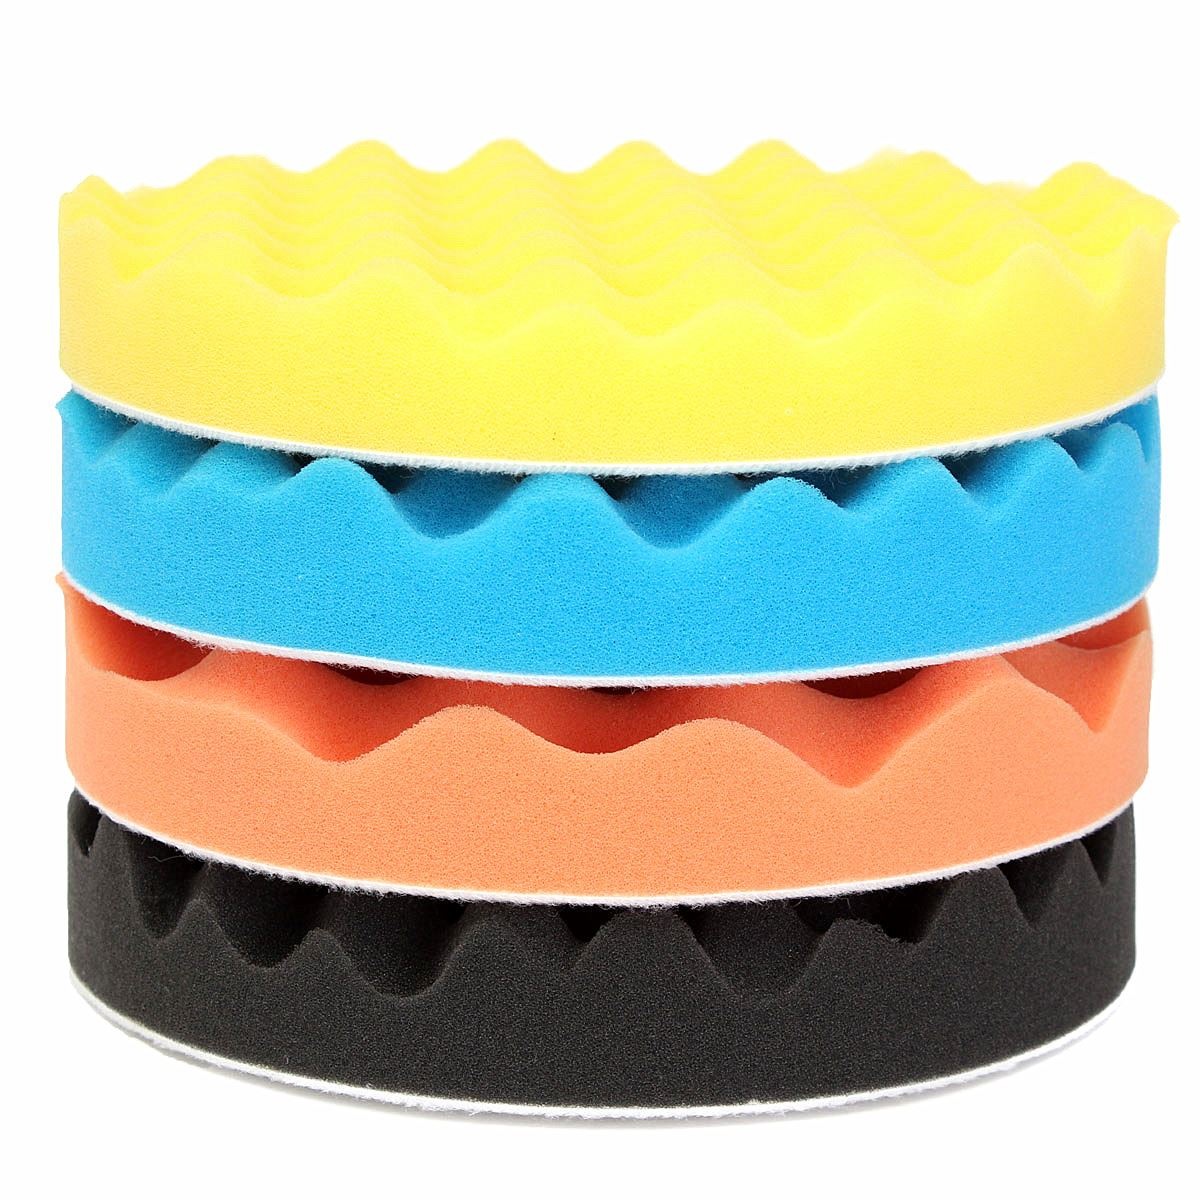 4Pcs 7 Inch/180mm Sponge Waffle Polishing Buffer Pad Foam